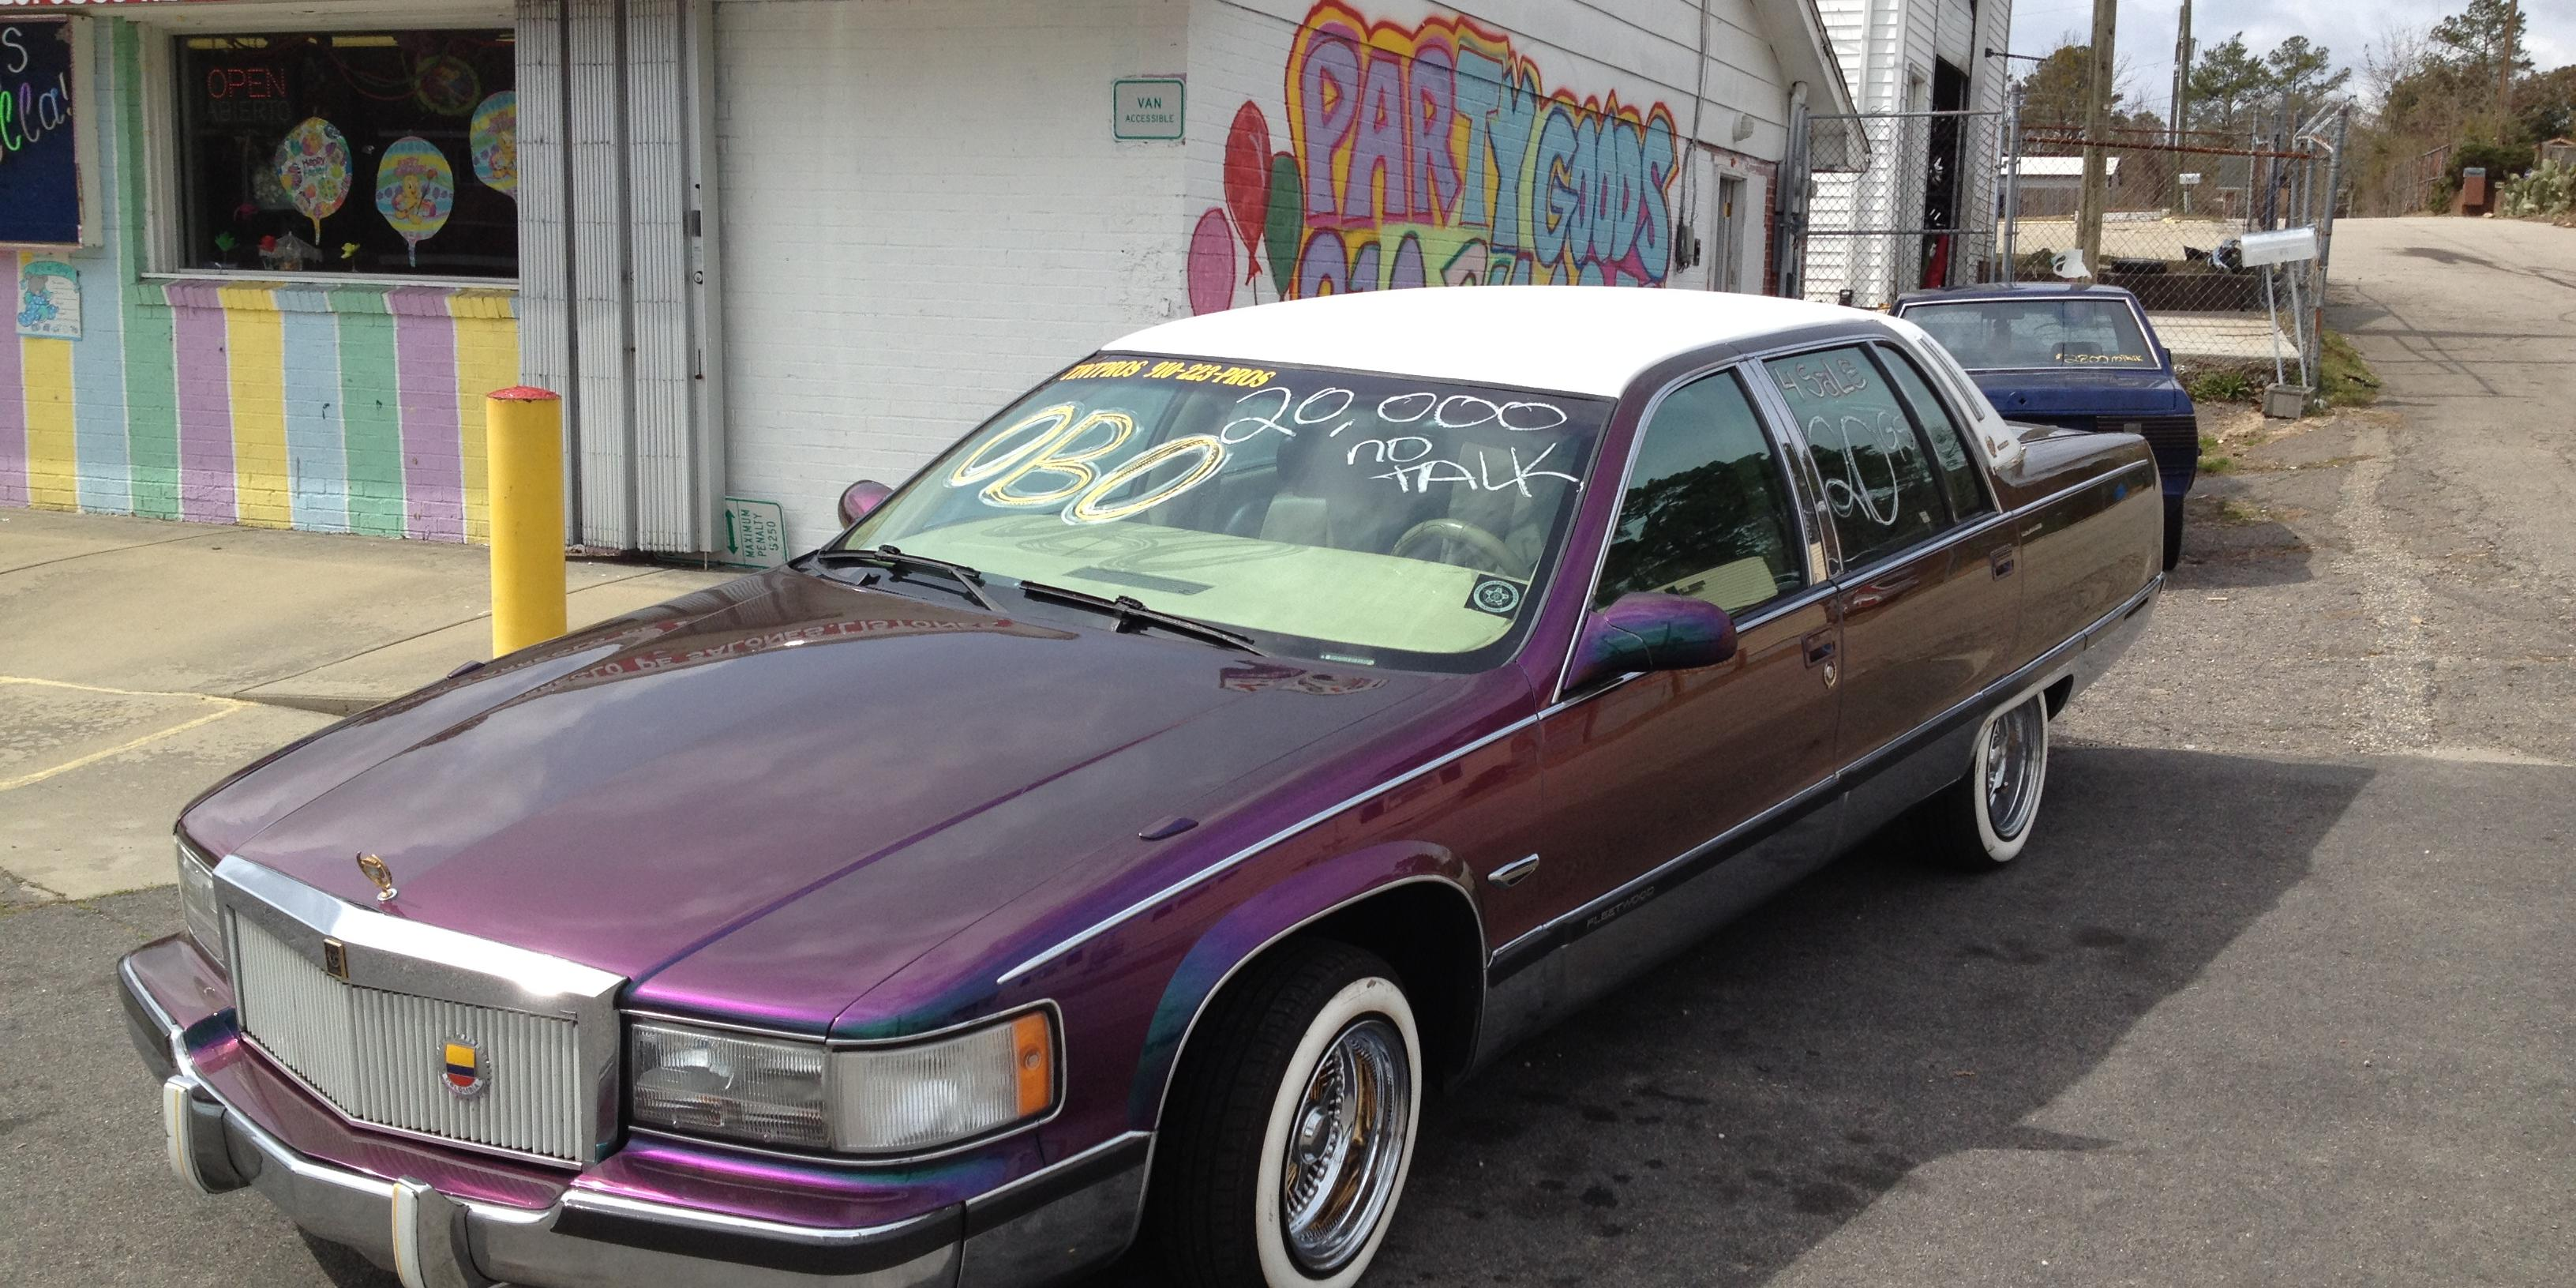 James Kilo Bofill 1995 Cadillac Fleetwood